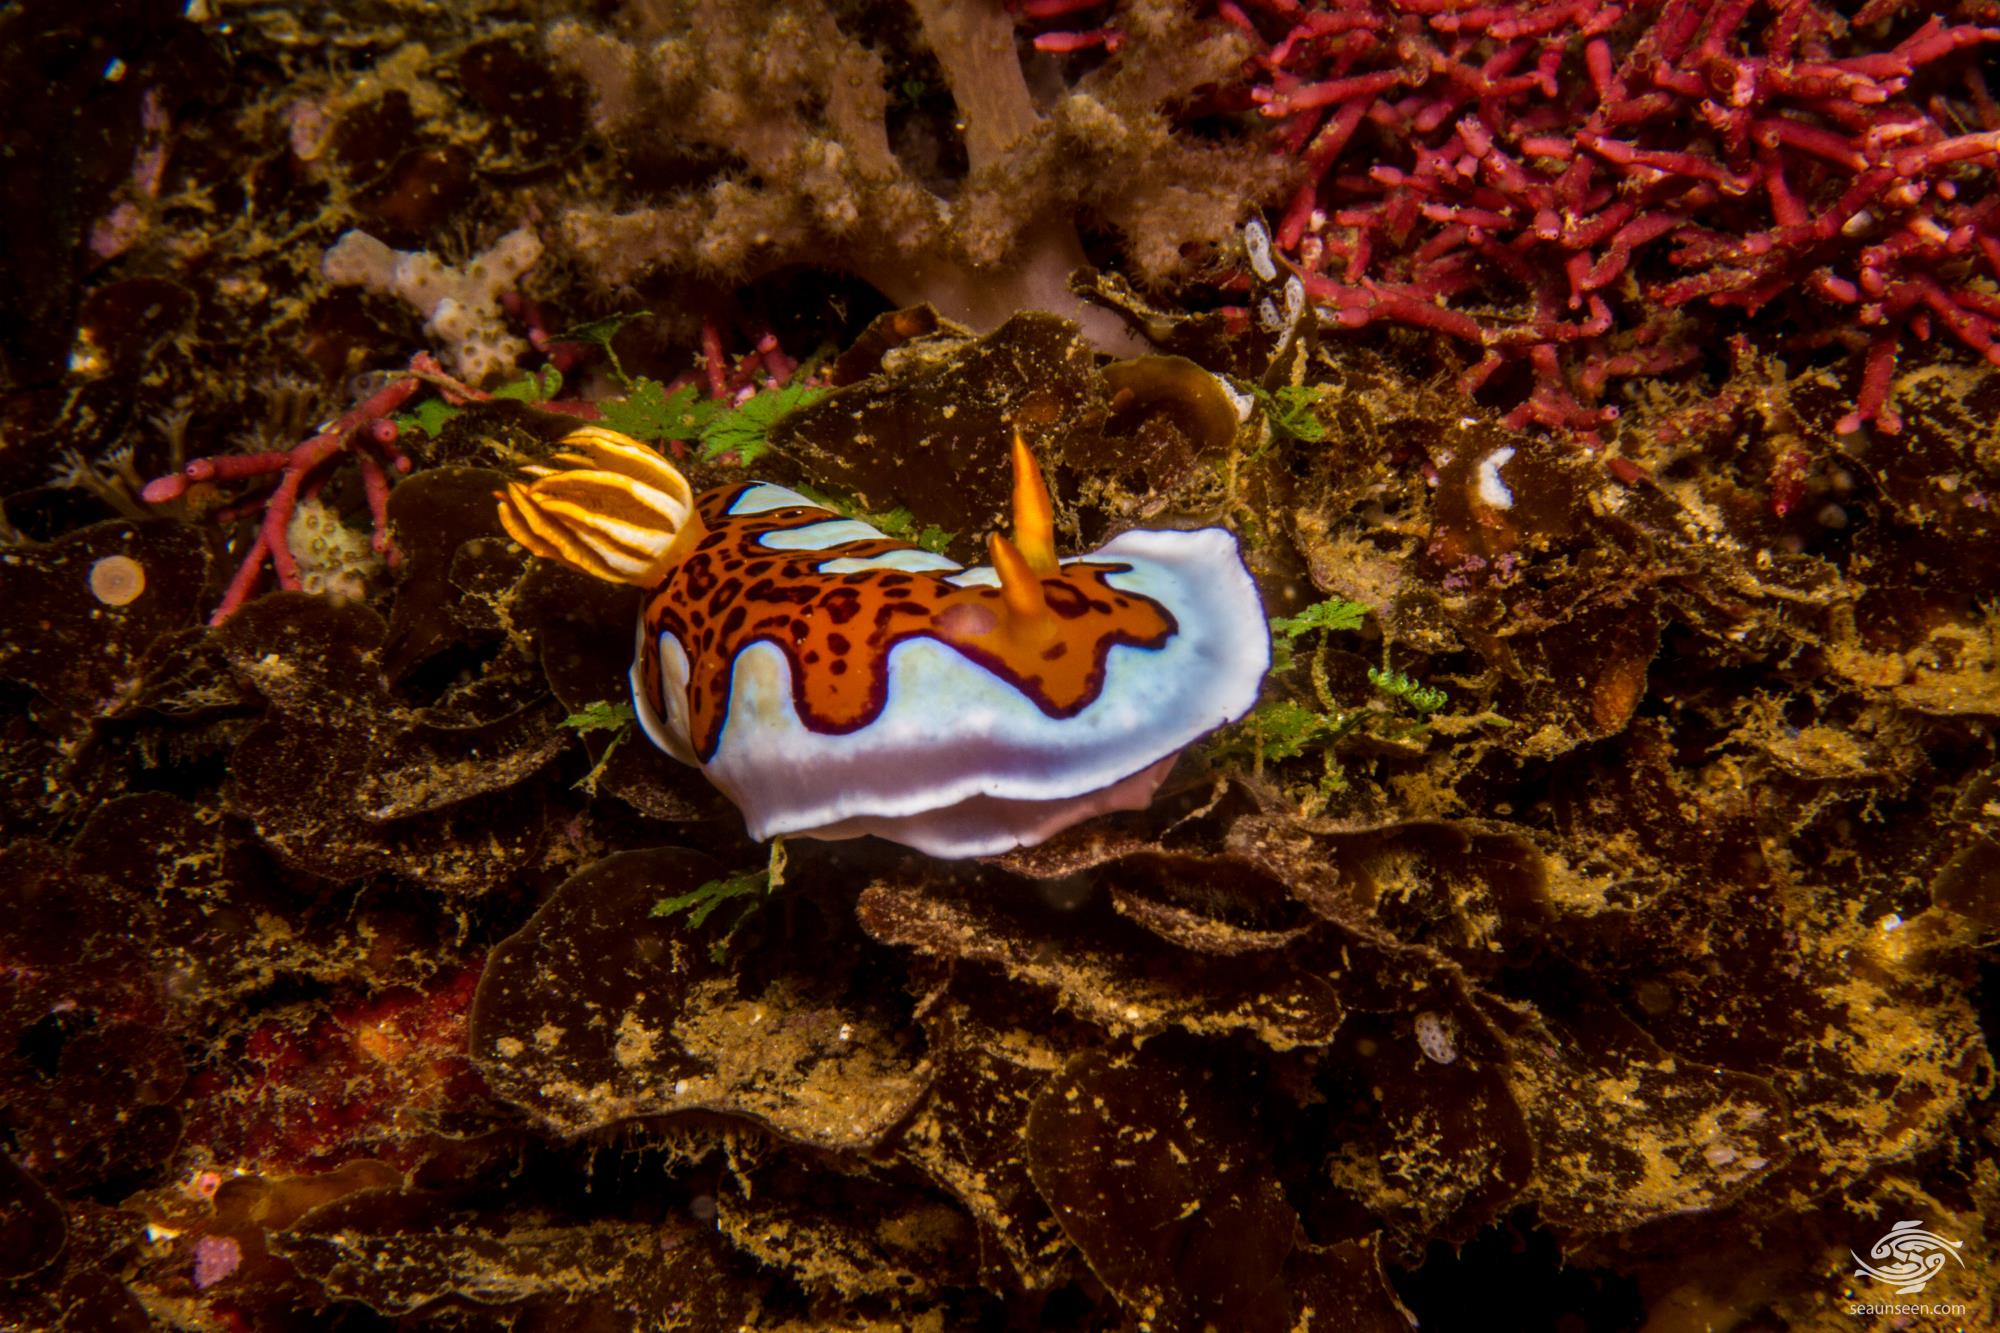 Goniobranchus gleniei, previously known as Chromodoris gleniei